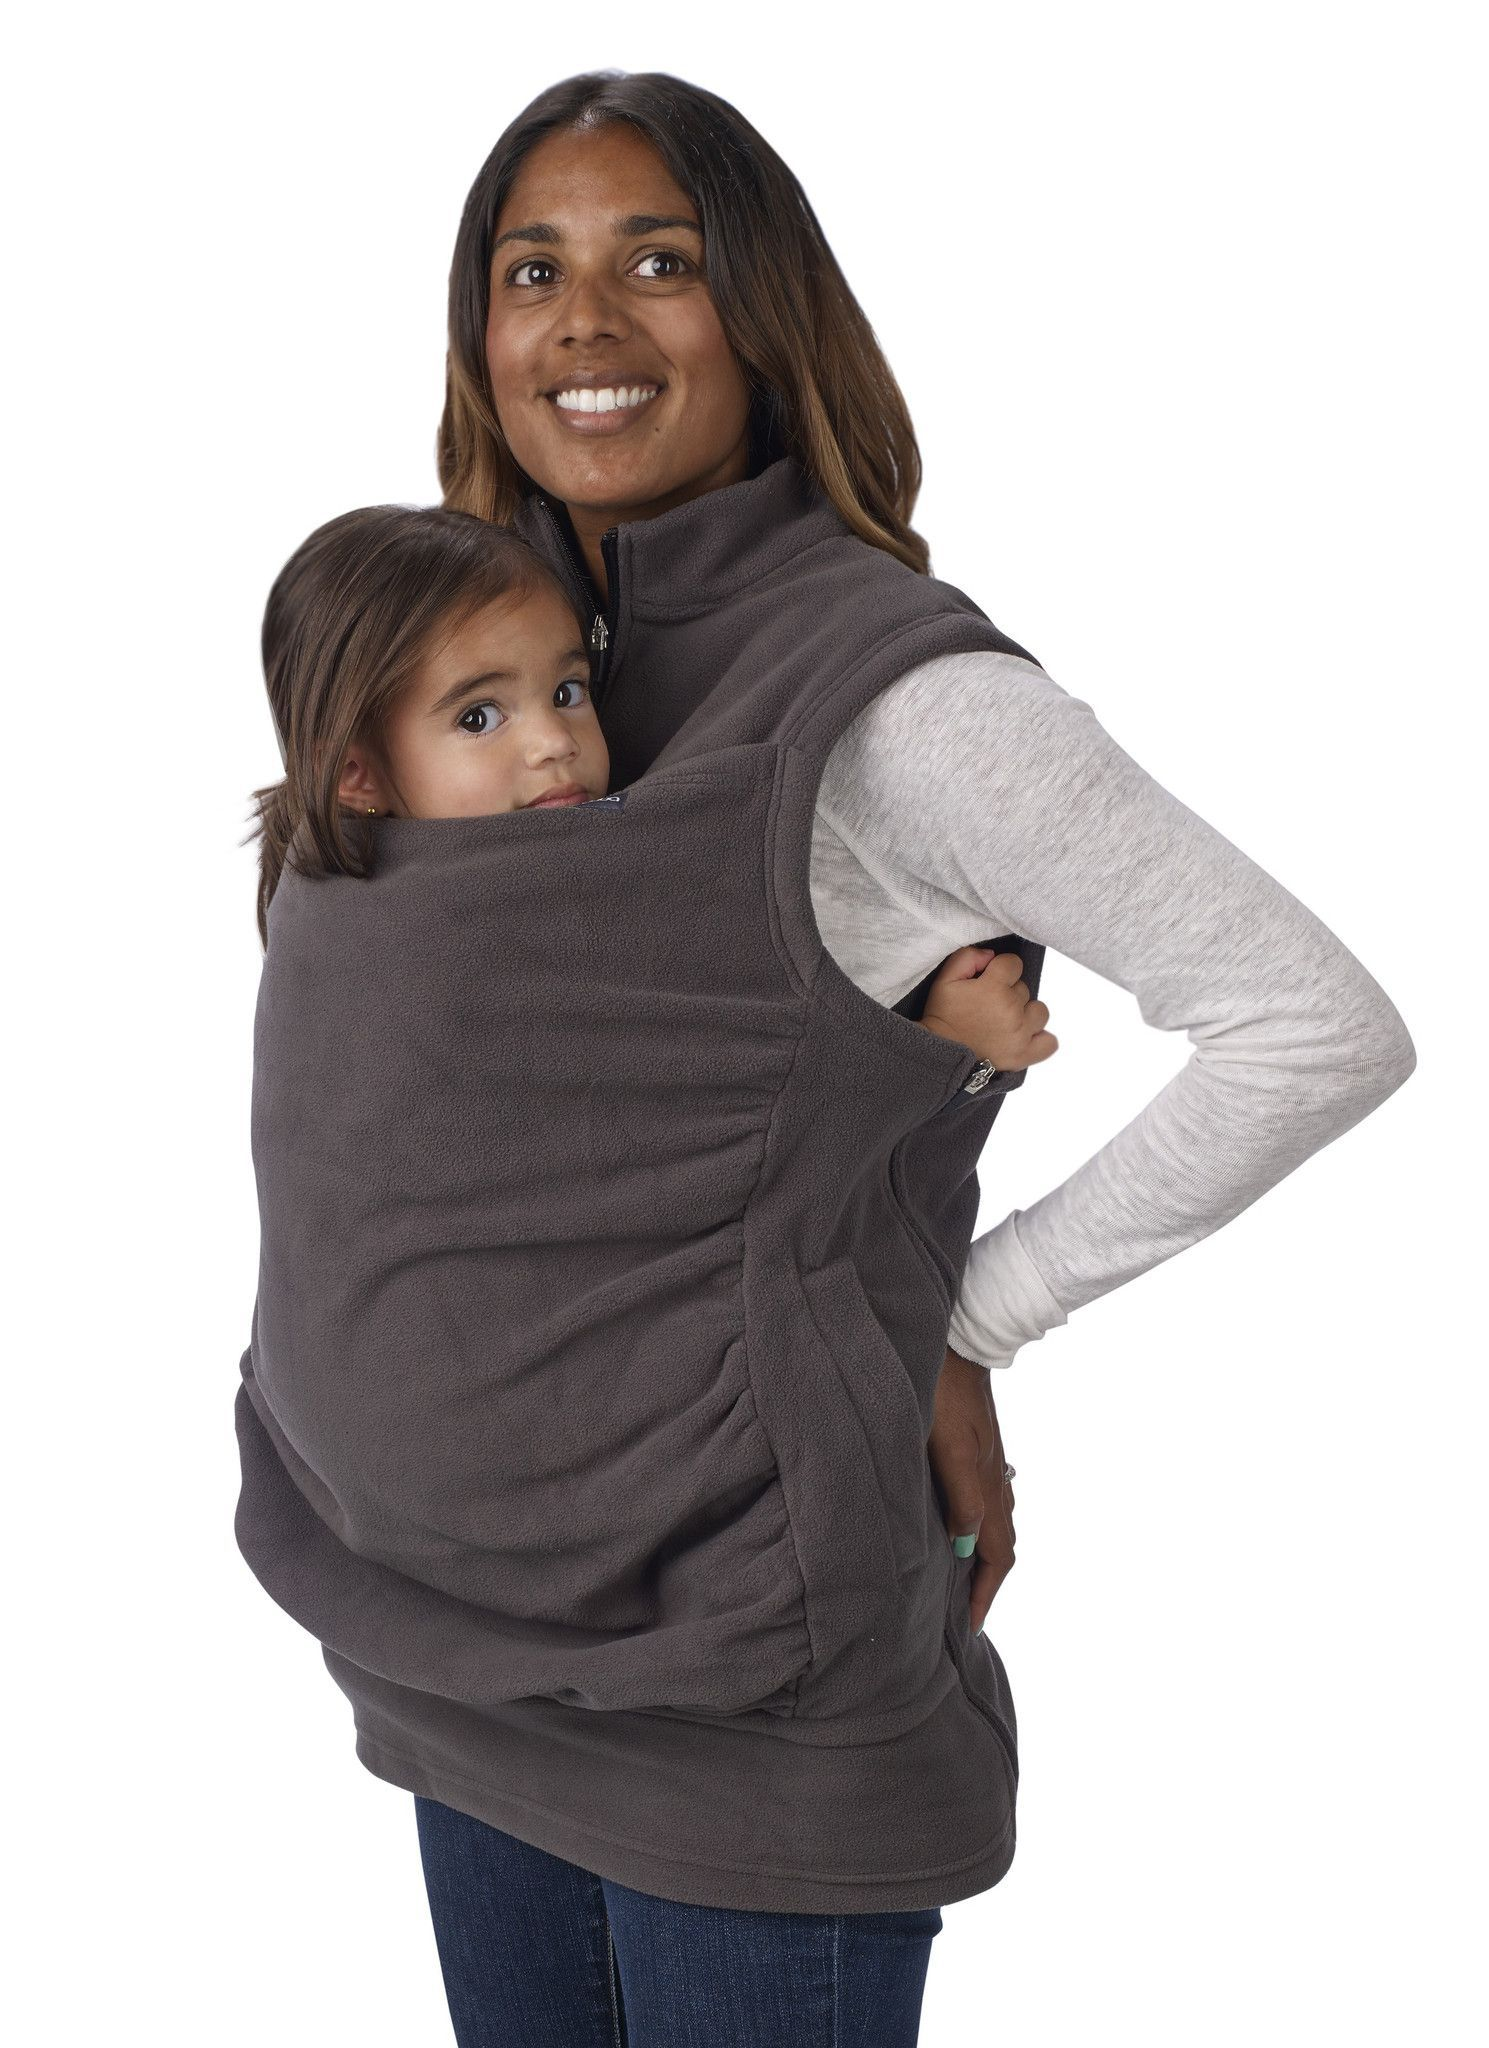 Boba Vest Baby Pinterest Baby Wearing Baby And Baby Carrier